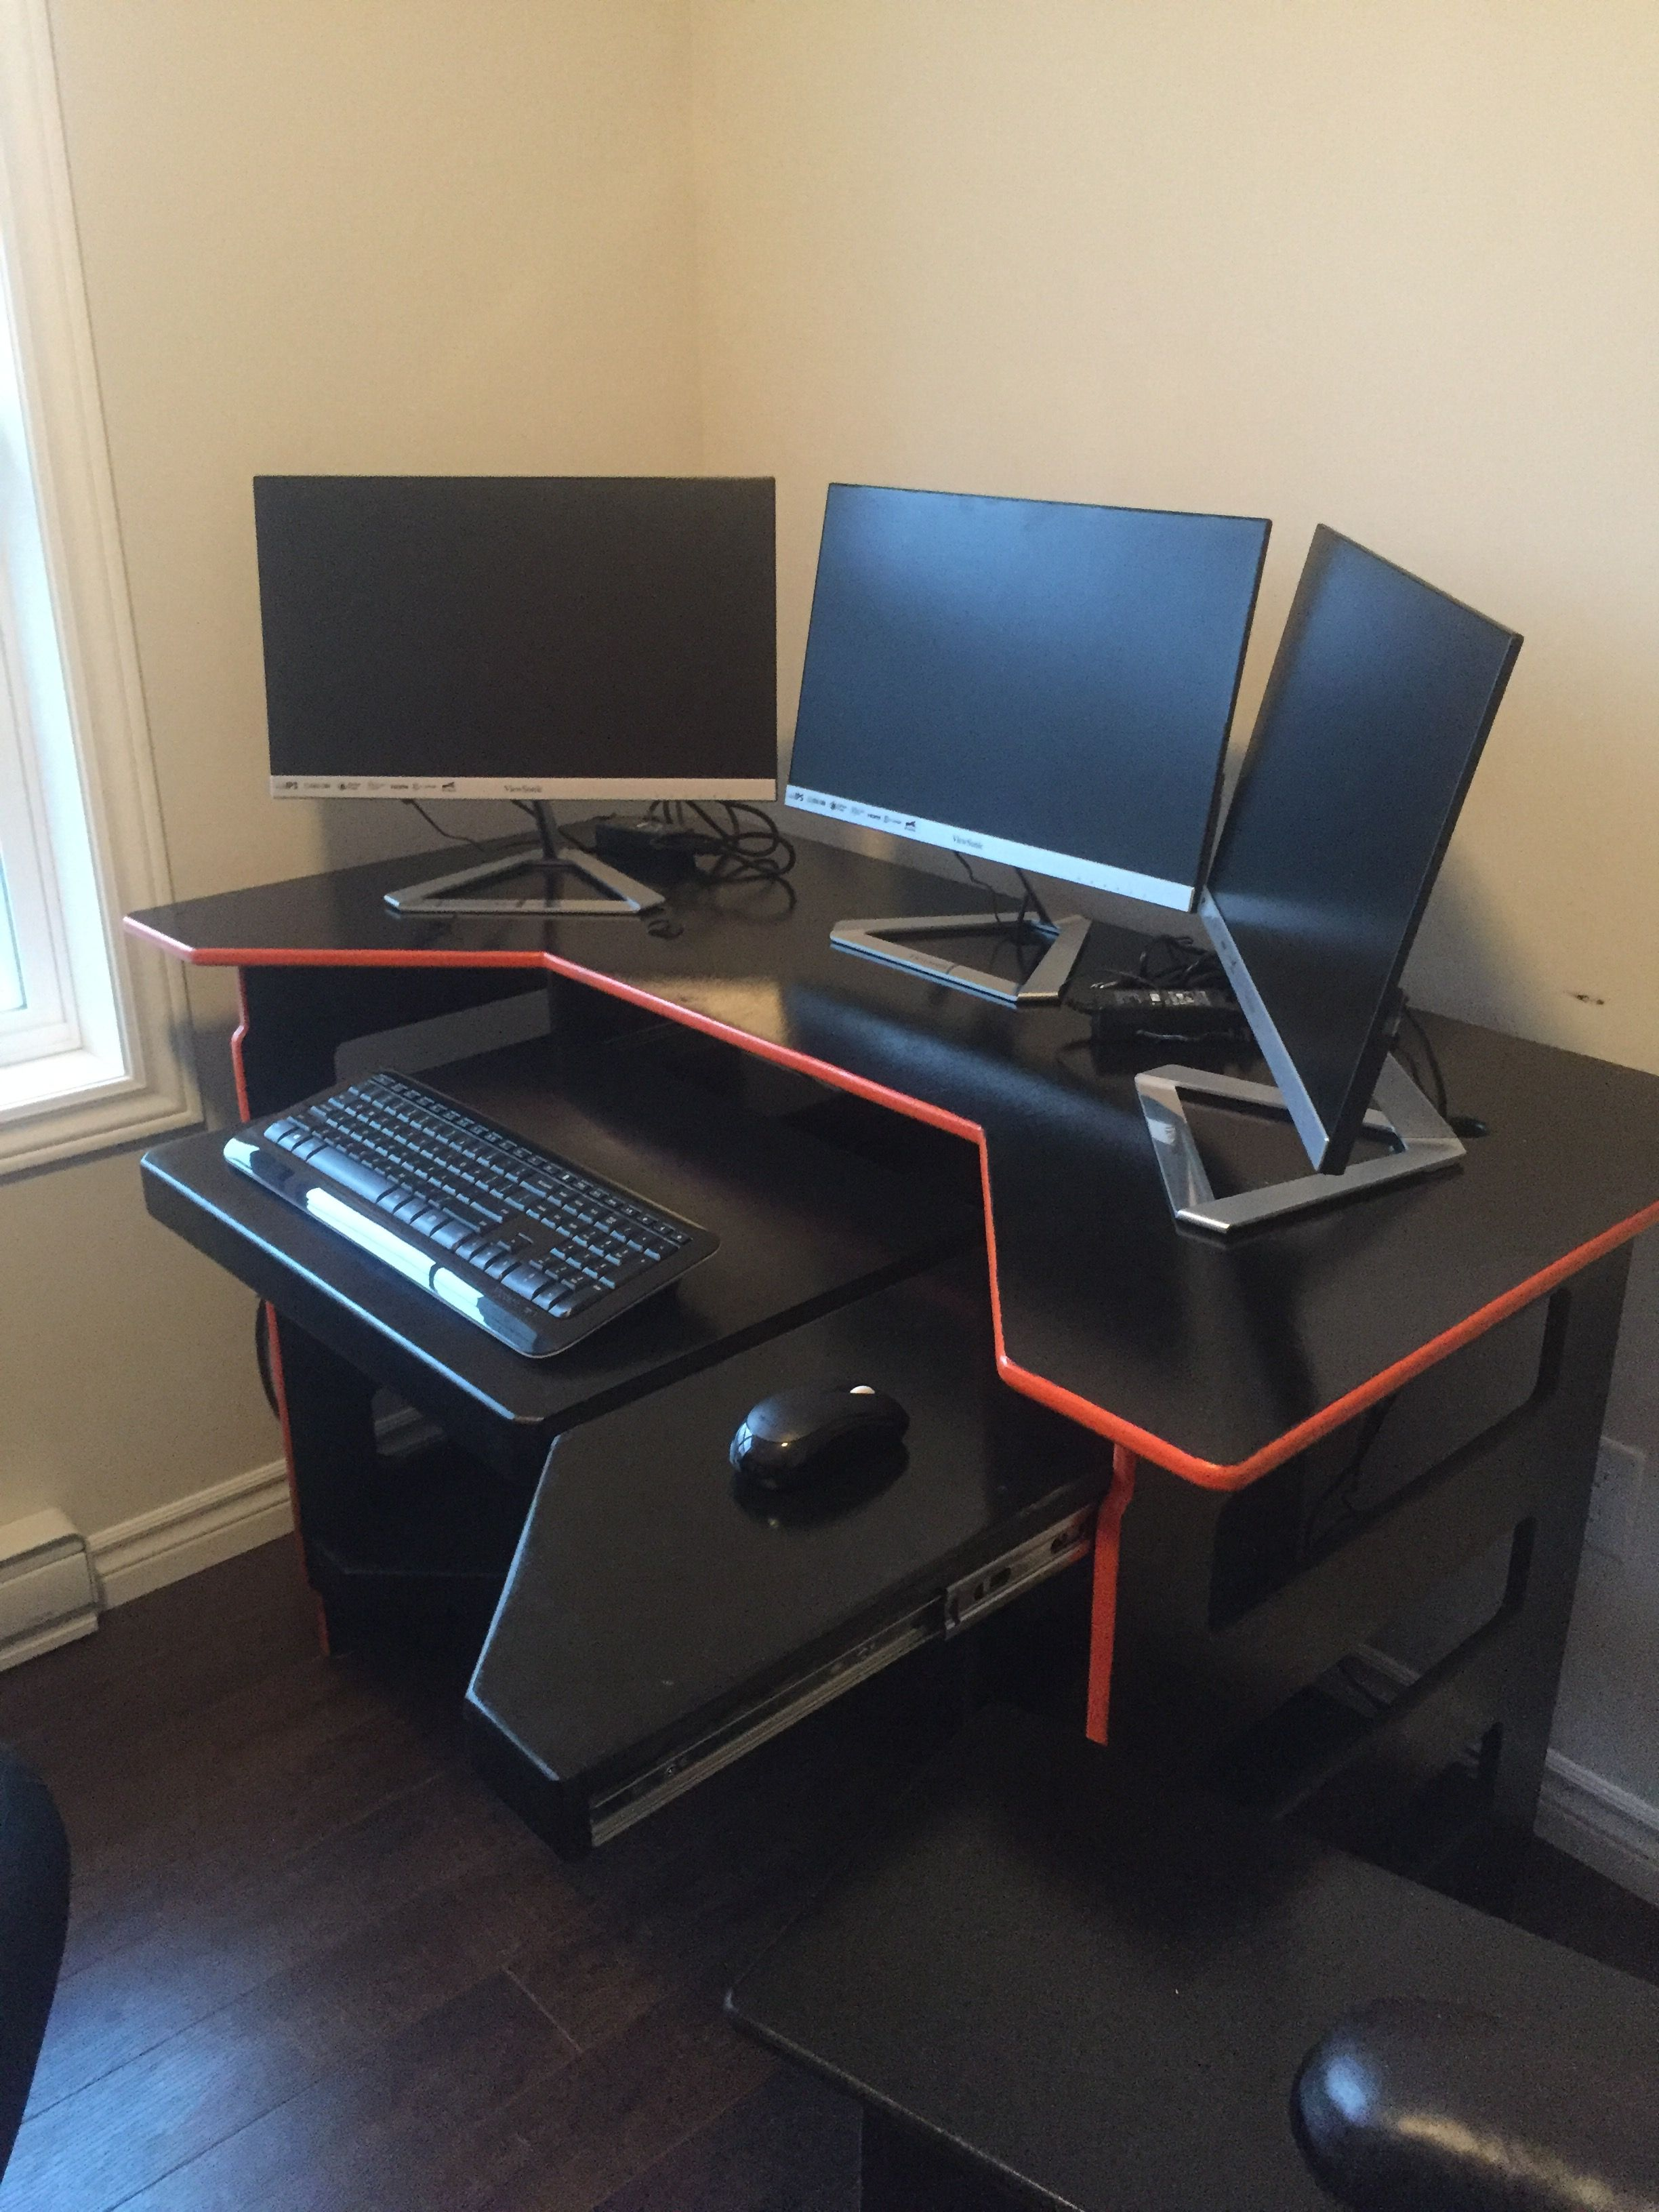 Computer Chairs For Gaming Gaming Desks Gaming Desks Pinterest Gaming Desk